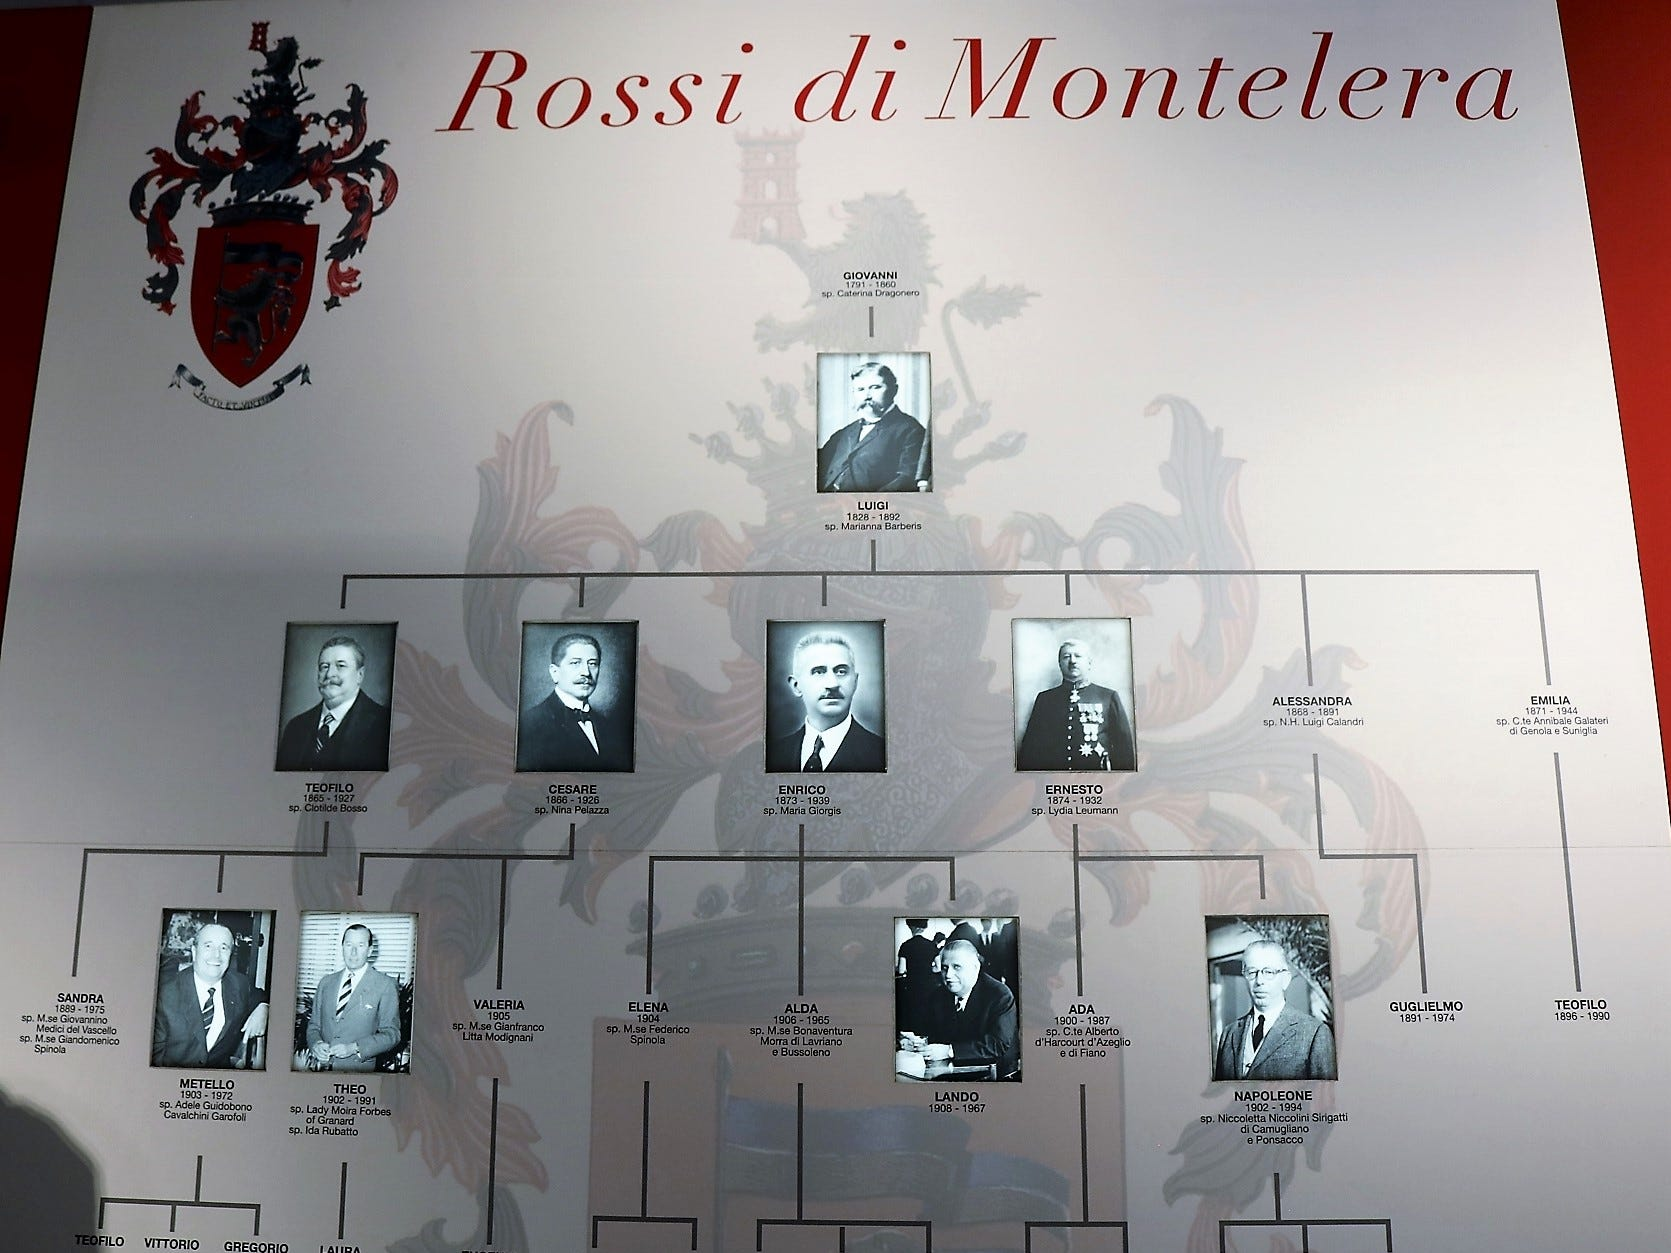 As production specialist, Luigi Rossi was one of three founders of the brand. His name wasn't a part of the company's though until 1879, after previously being known as Martini, Sola & Co. The Rossi family retained ownership until Bacardi acquired the company in 1993.